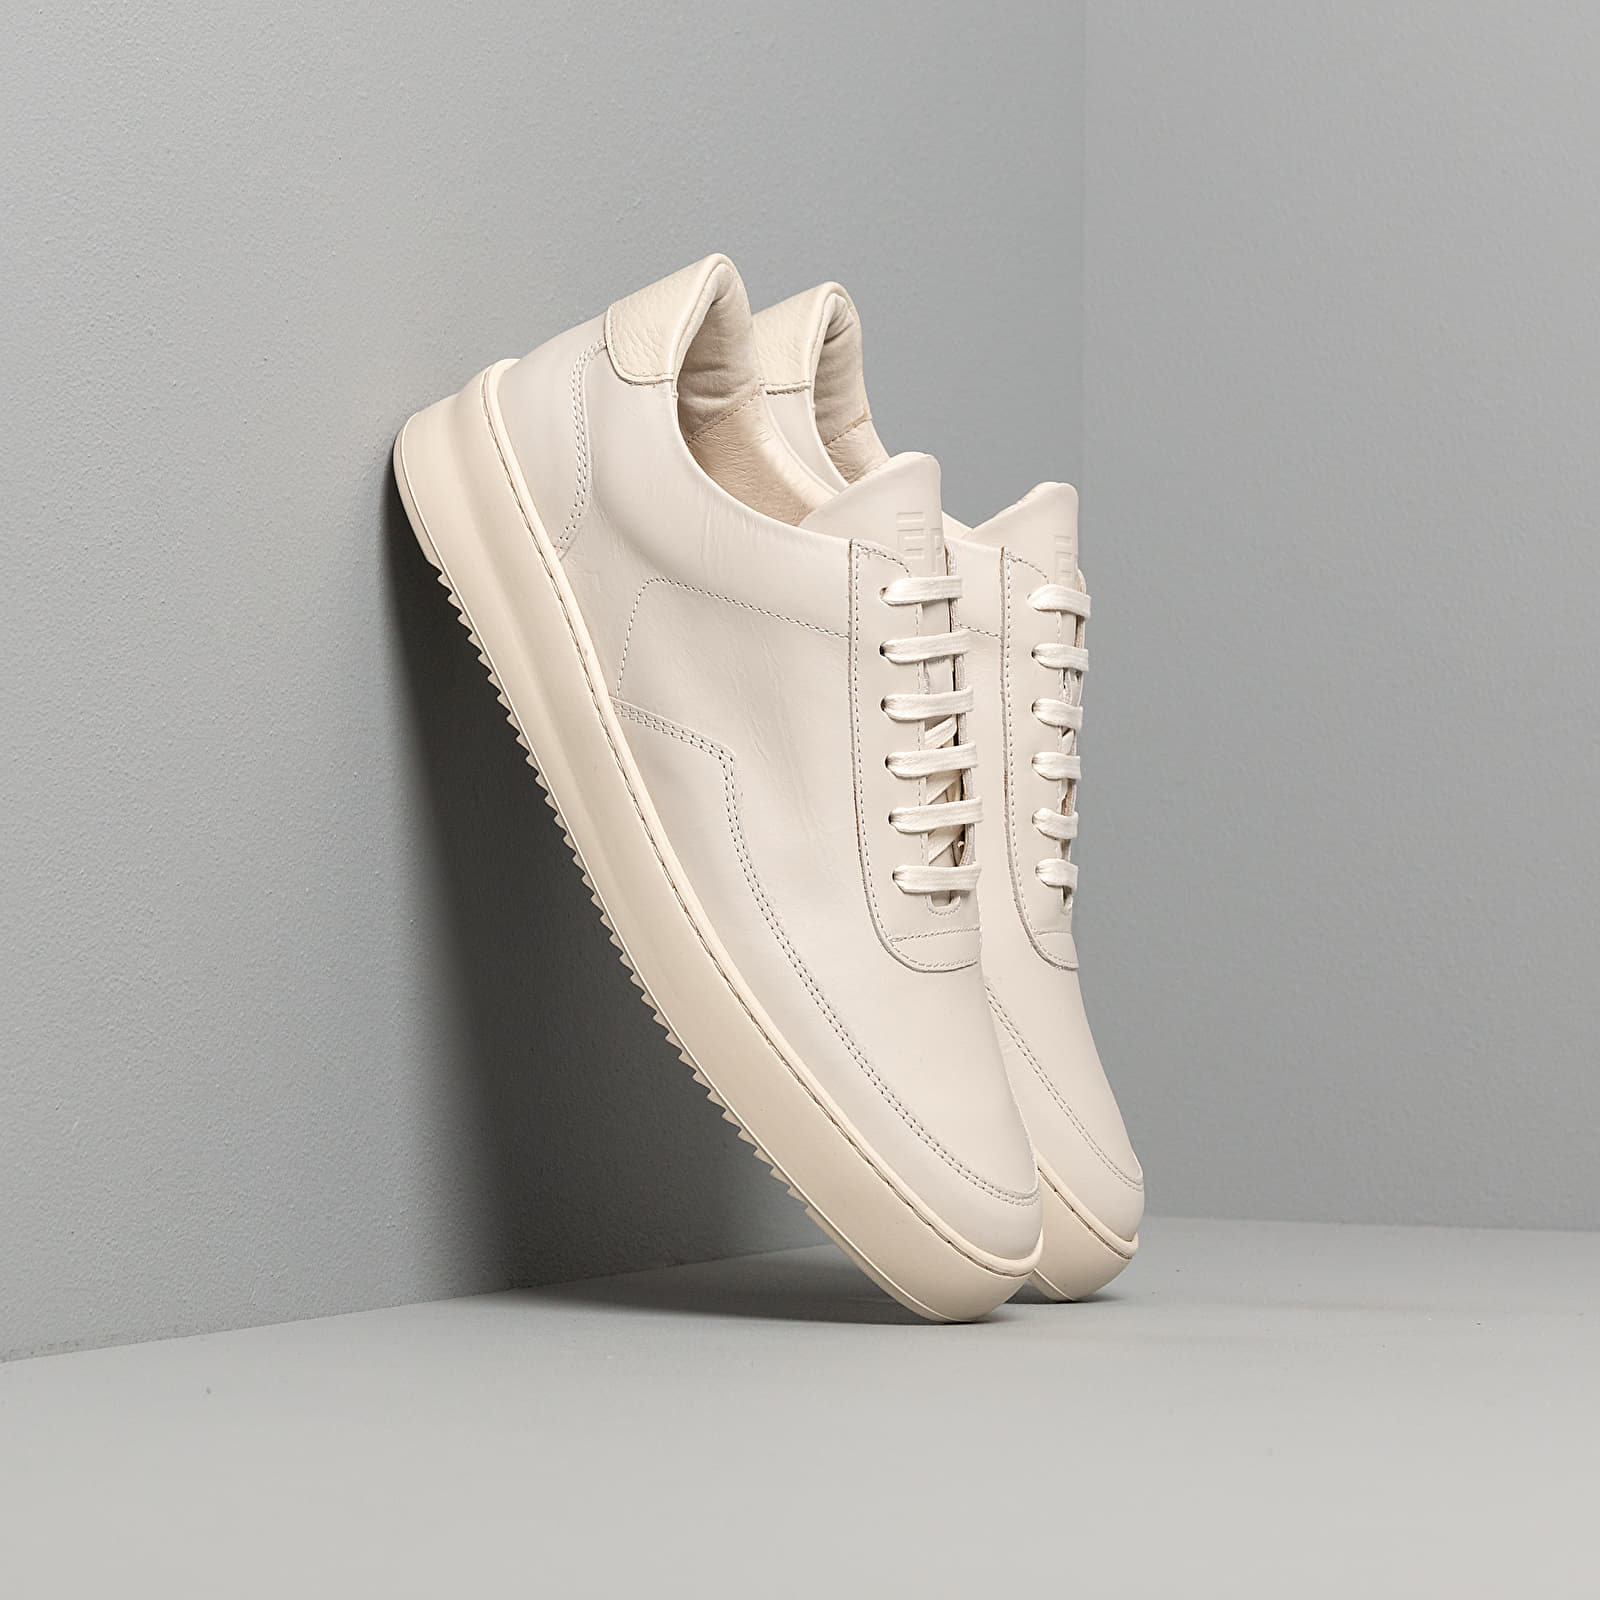 Scarpe e sneaker da uomo Filling Pieces Low Mondo Ripple Nardo Nappa All White